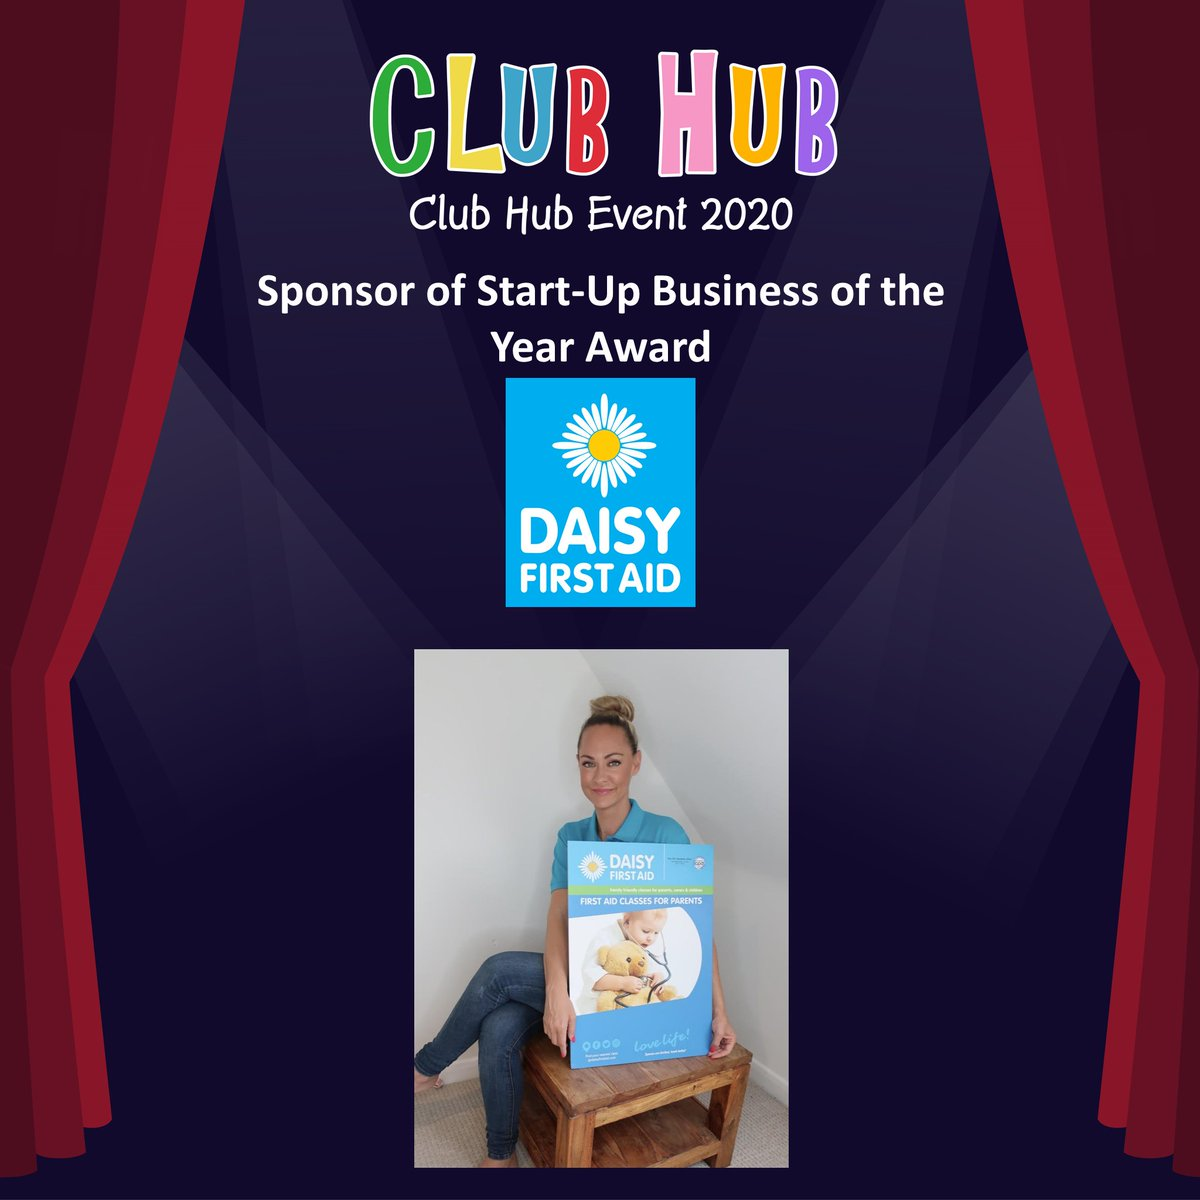 Congratulations to these businesses who have been nominated for Start-Up Business of the Year Sponsored by @daisyfirstaidhttps://clubhubuk.co.uk/club-hub-event-2020/2020-entry-categories/…  @TheConkerCrew  @CardiffStation @youthercise  @InventorsM @Delvein2Delvene @actsdanceuk  @BigBangUK2 @boxingtots  @Anncookstarspic.twitter.com/hMDpPTf6j2